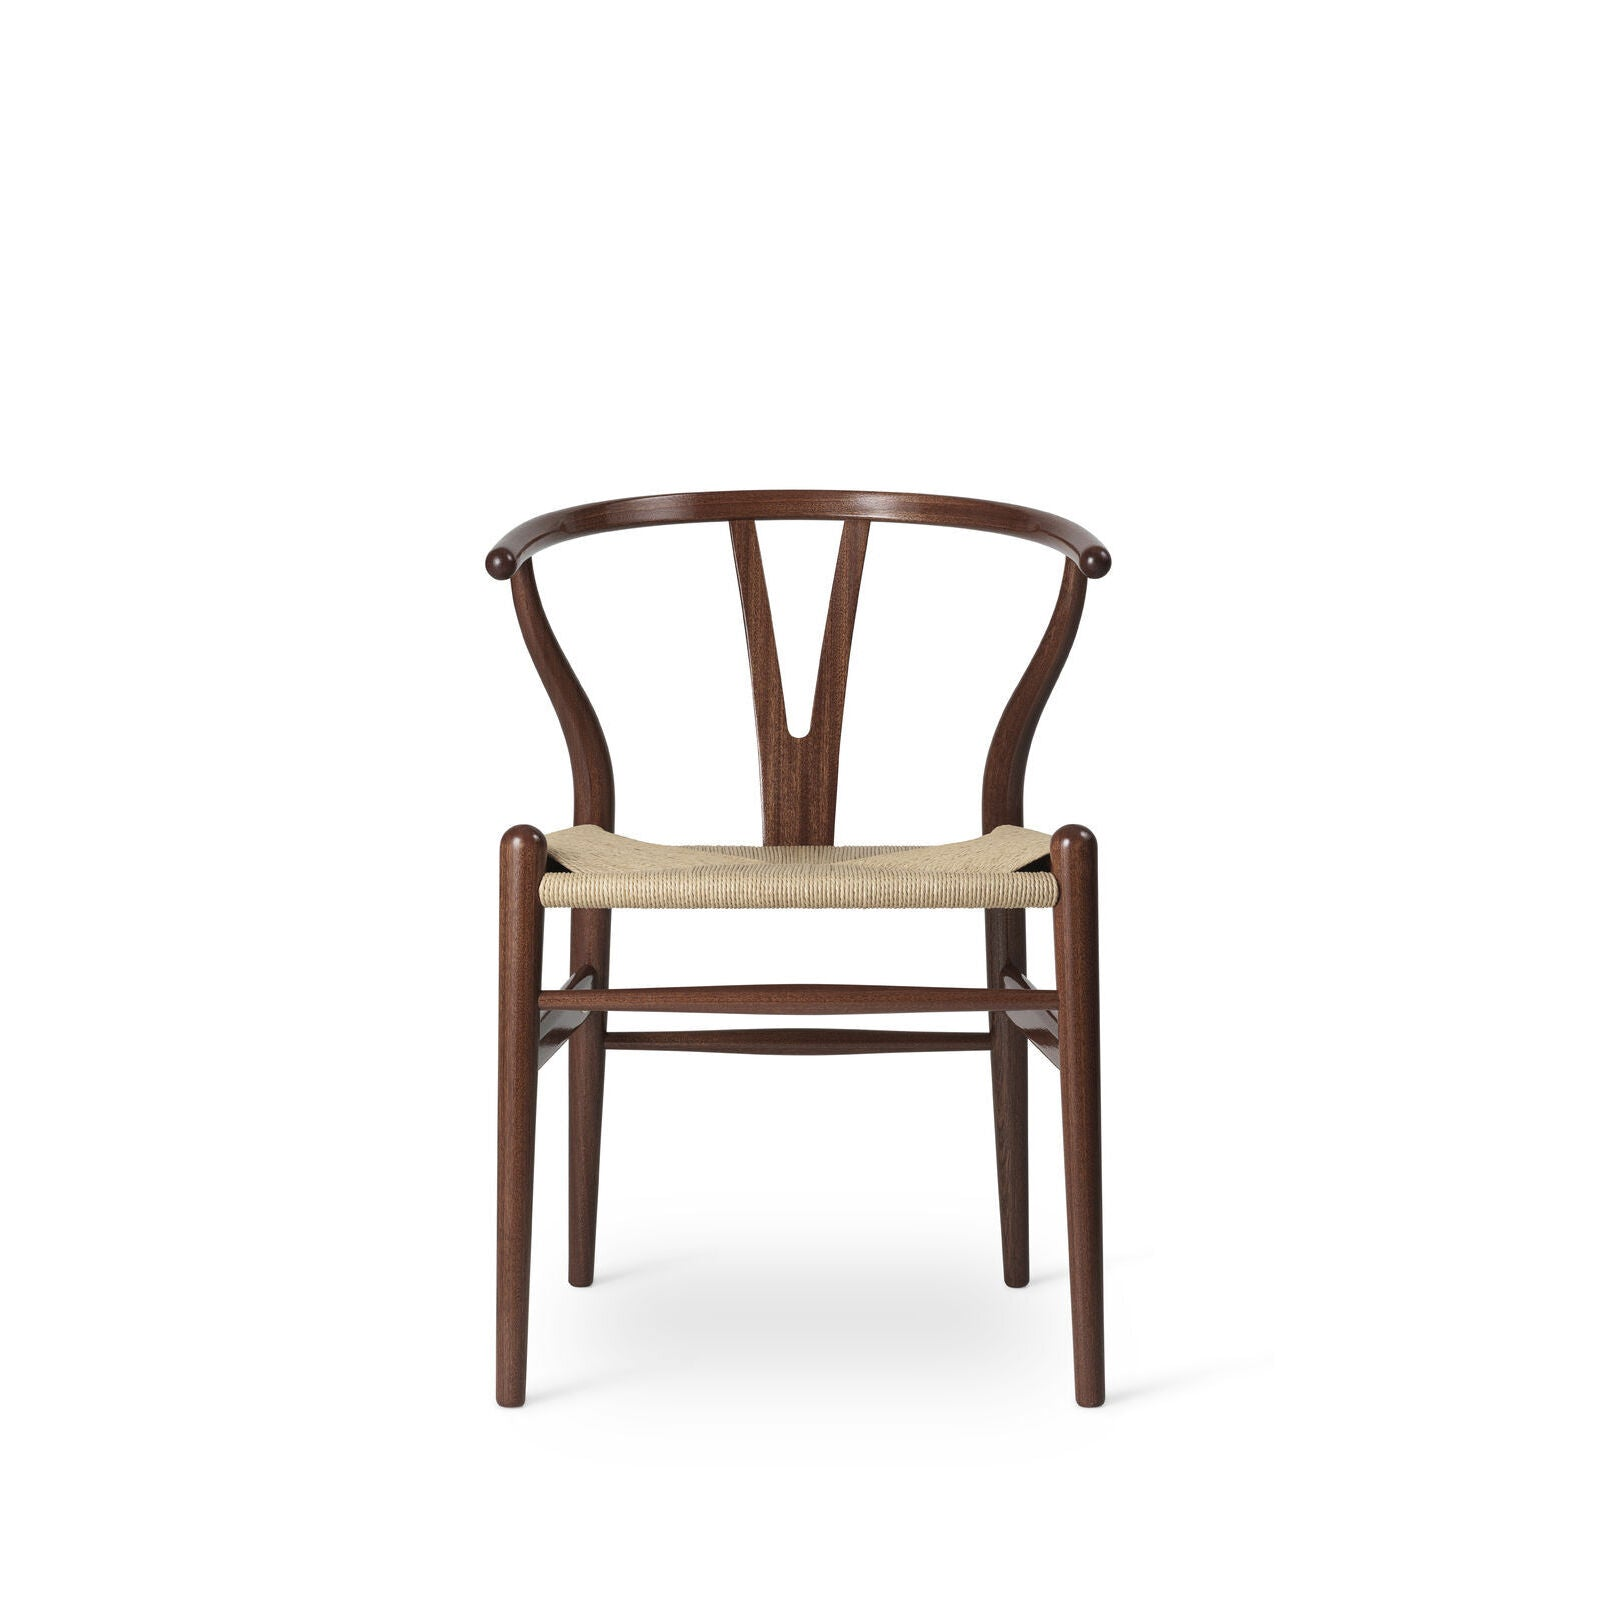 CH24P WISHBONE CHAIR | Hans J. Wegner's 107th birthday edition